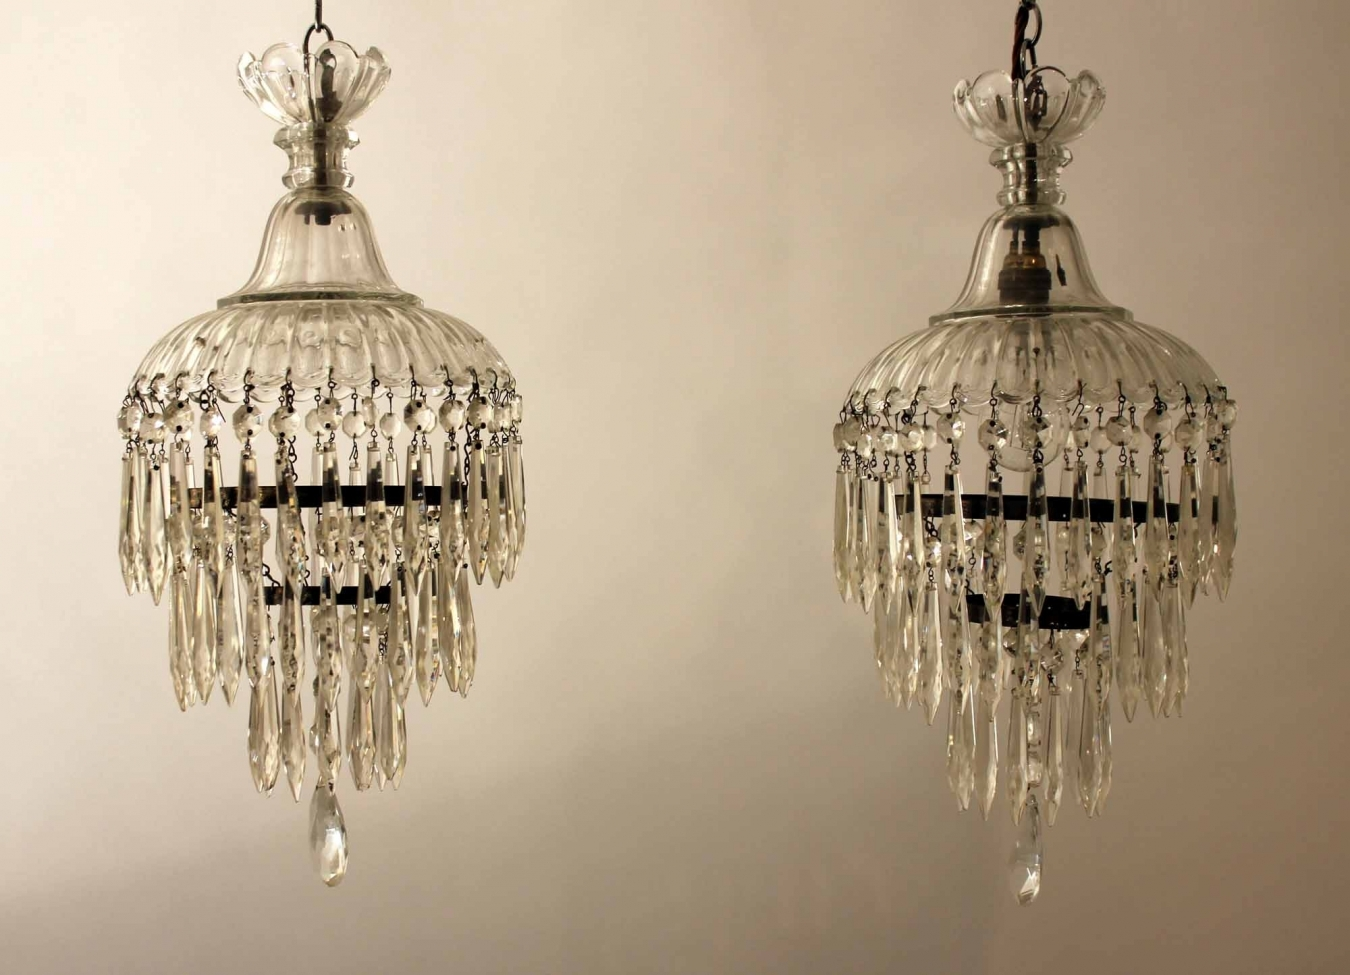 Pair of edwardian chandeliers trendfirst pair of edwardian chandeliers pair of edwardian chandeliers mozeypictures Gallery